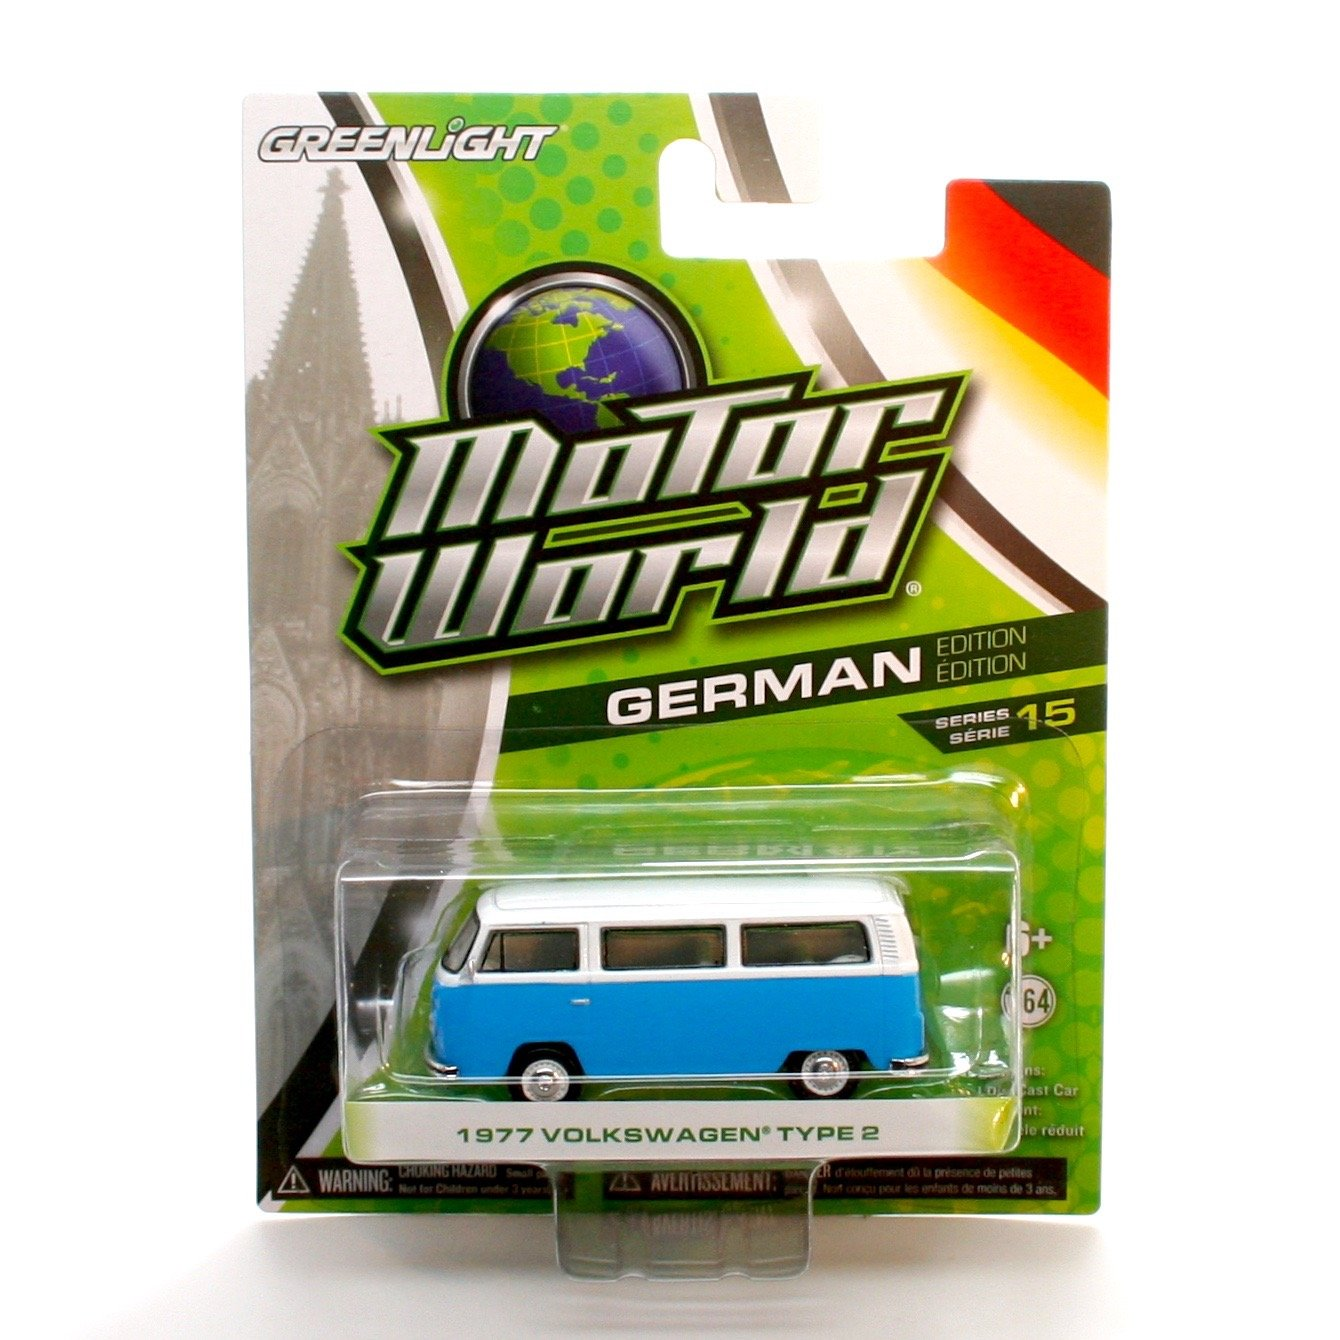 1977 VOLKSWAGEN TYPE 2 (Blue/White) * Motor World Series 15 * 2016 Greenlight Collectibles German Edition 1:64 Scale Die-Cast Vehicle by Motor World SG_B01C5AJH3S_US